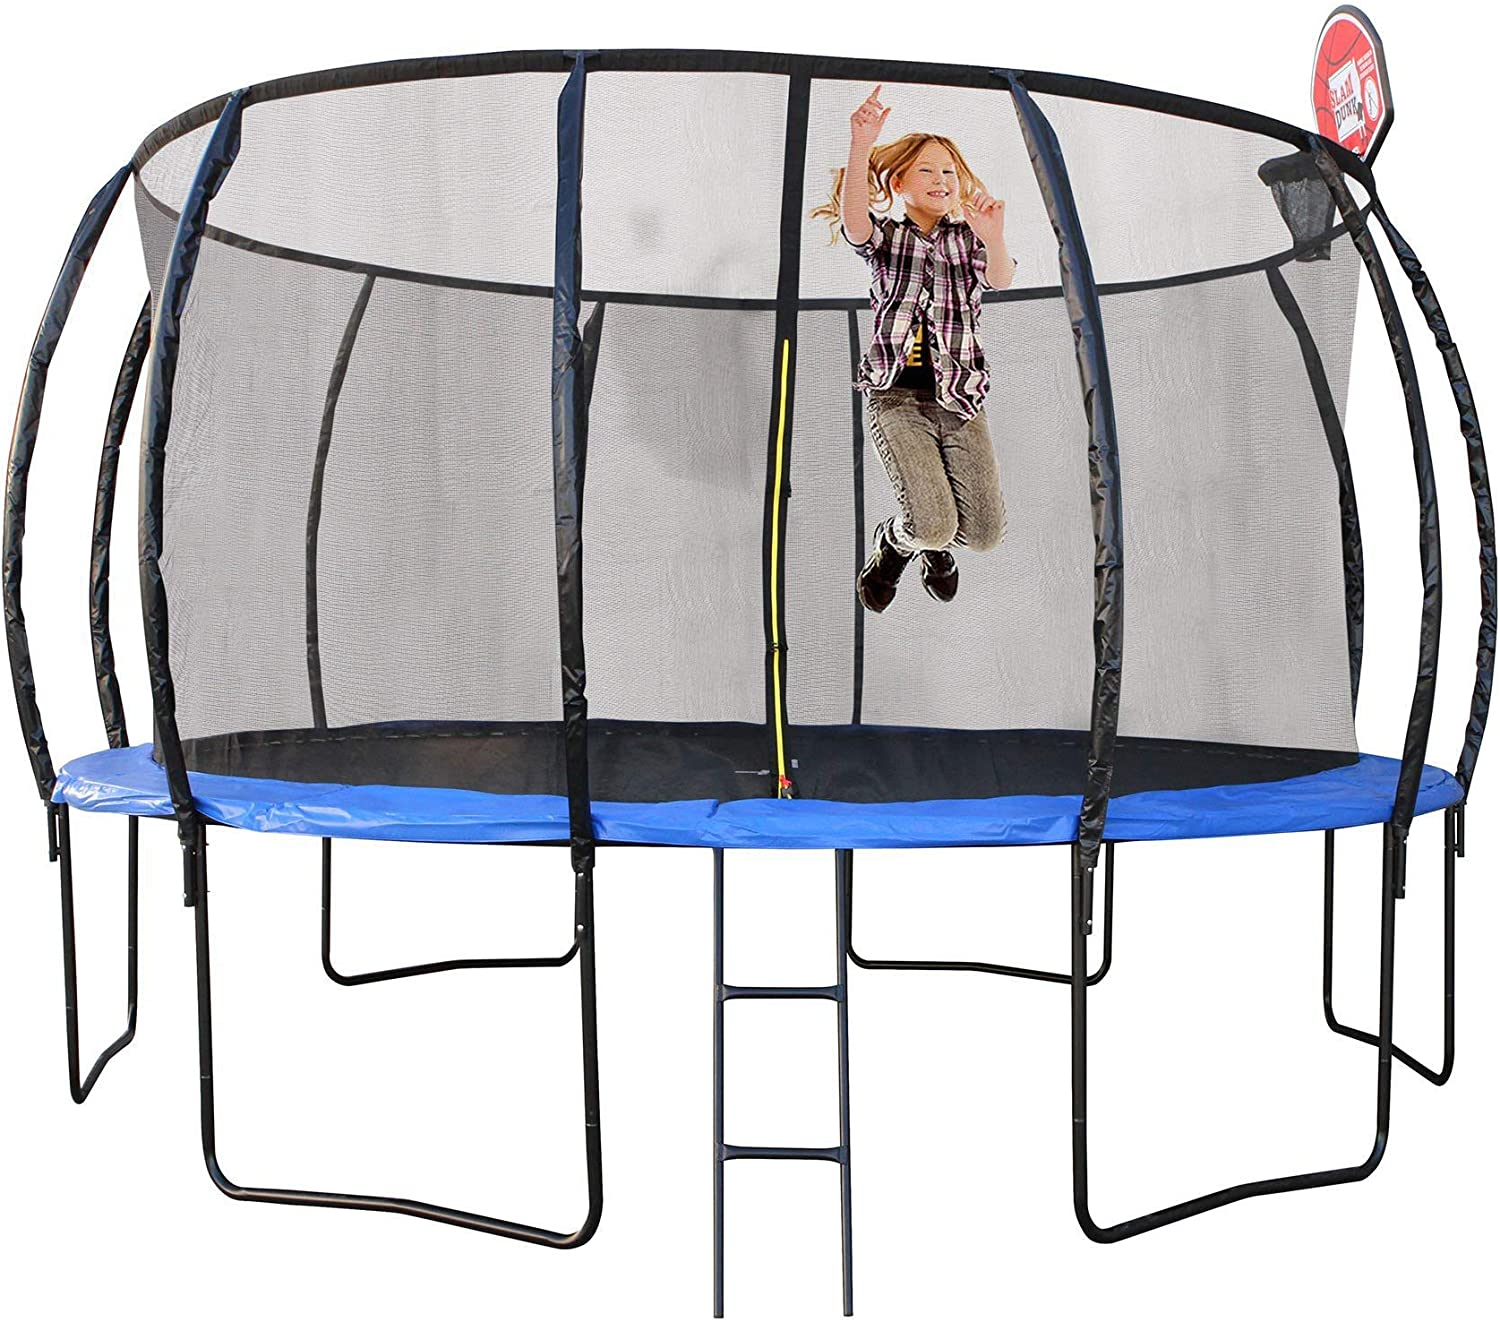 10ft Round Trampoline 305cm Safety Net Pad Cover Mat FREE Basketball Set